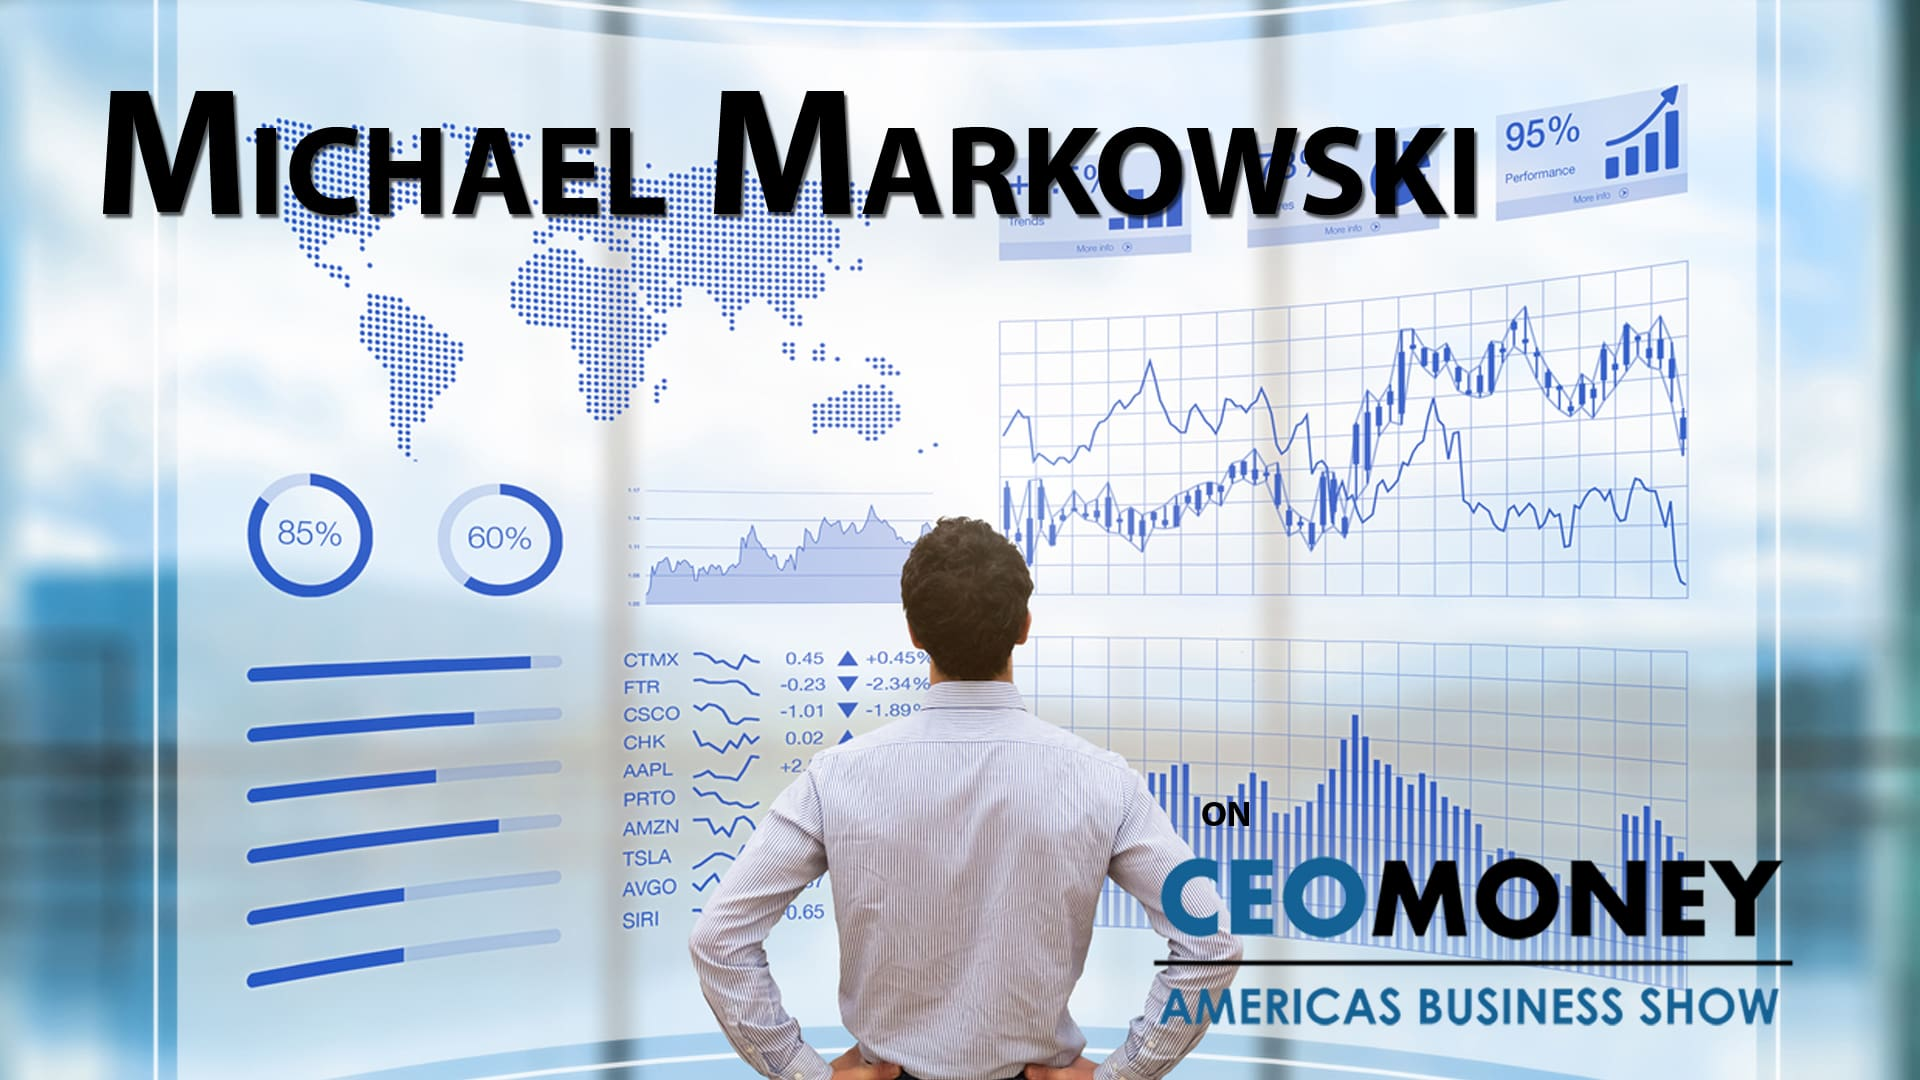 Michael Markowski on how private equity markets are becoming liquid